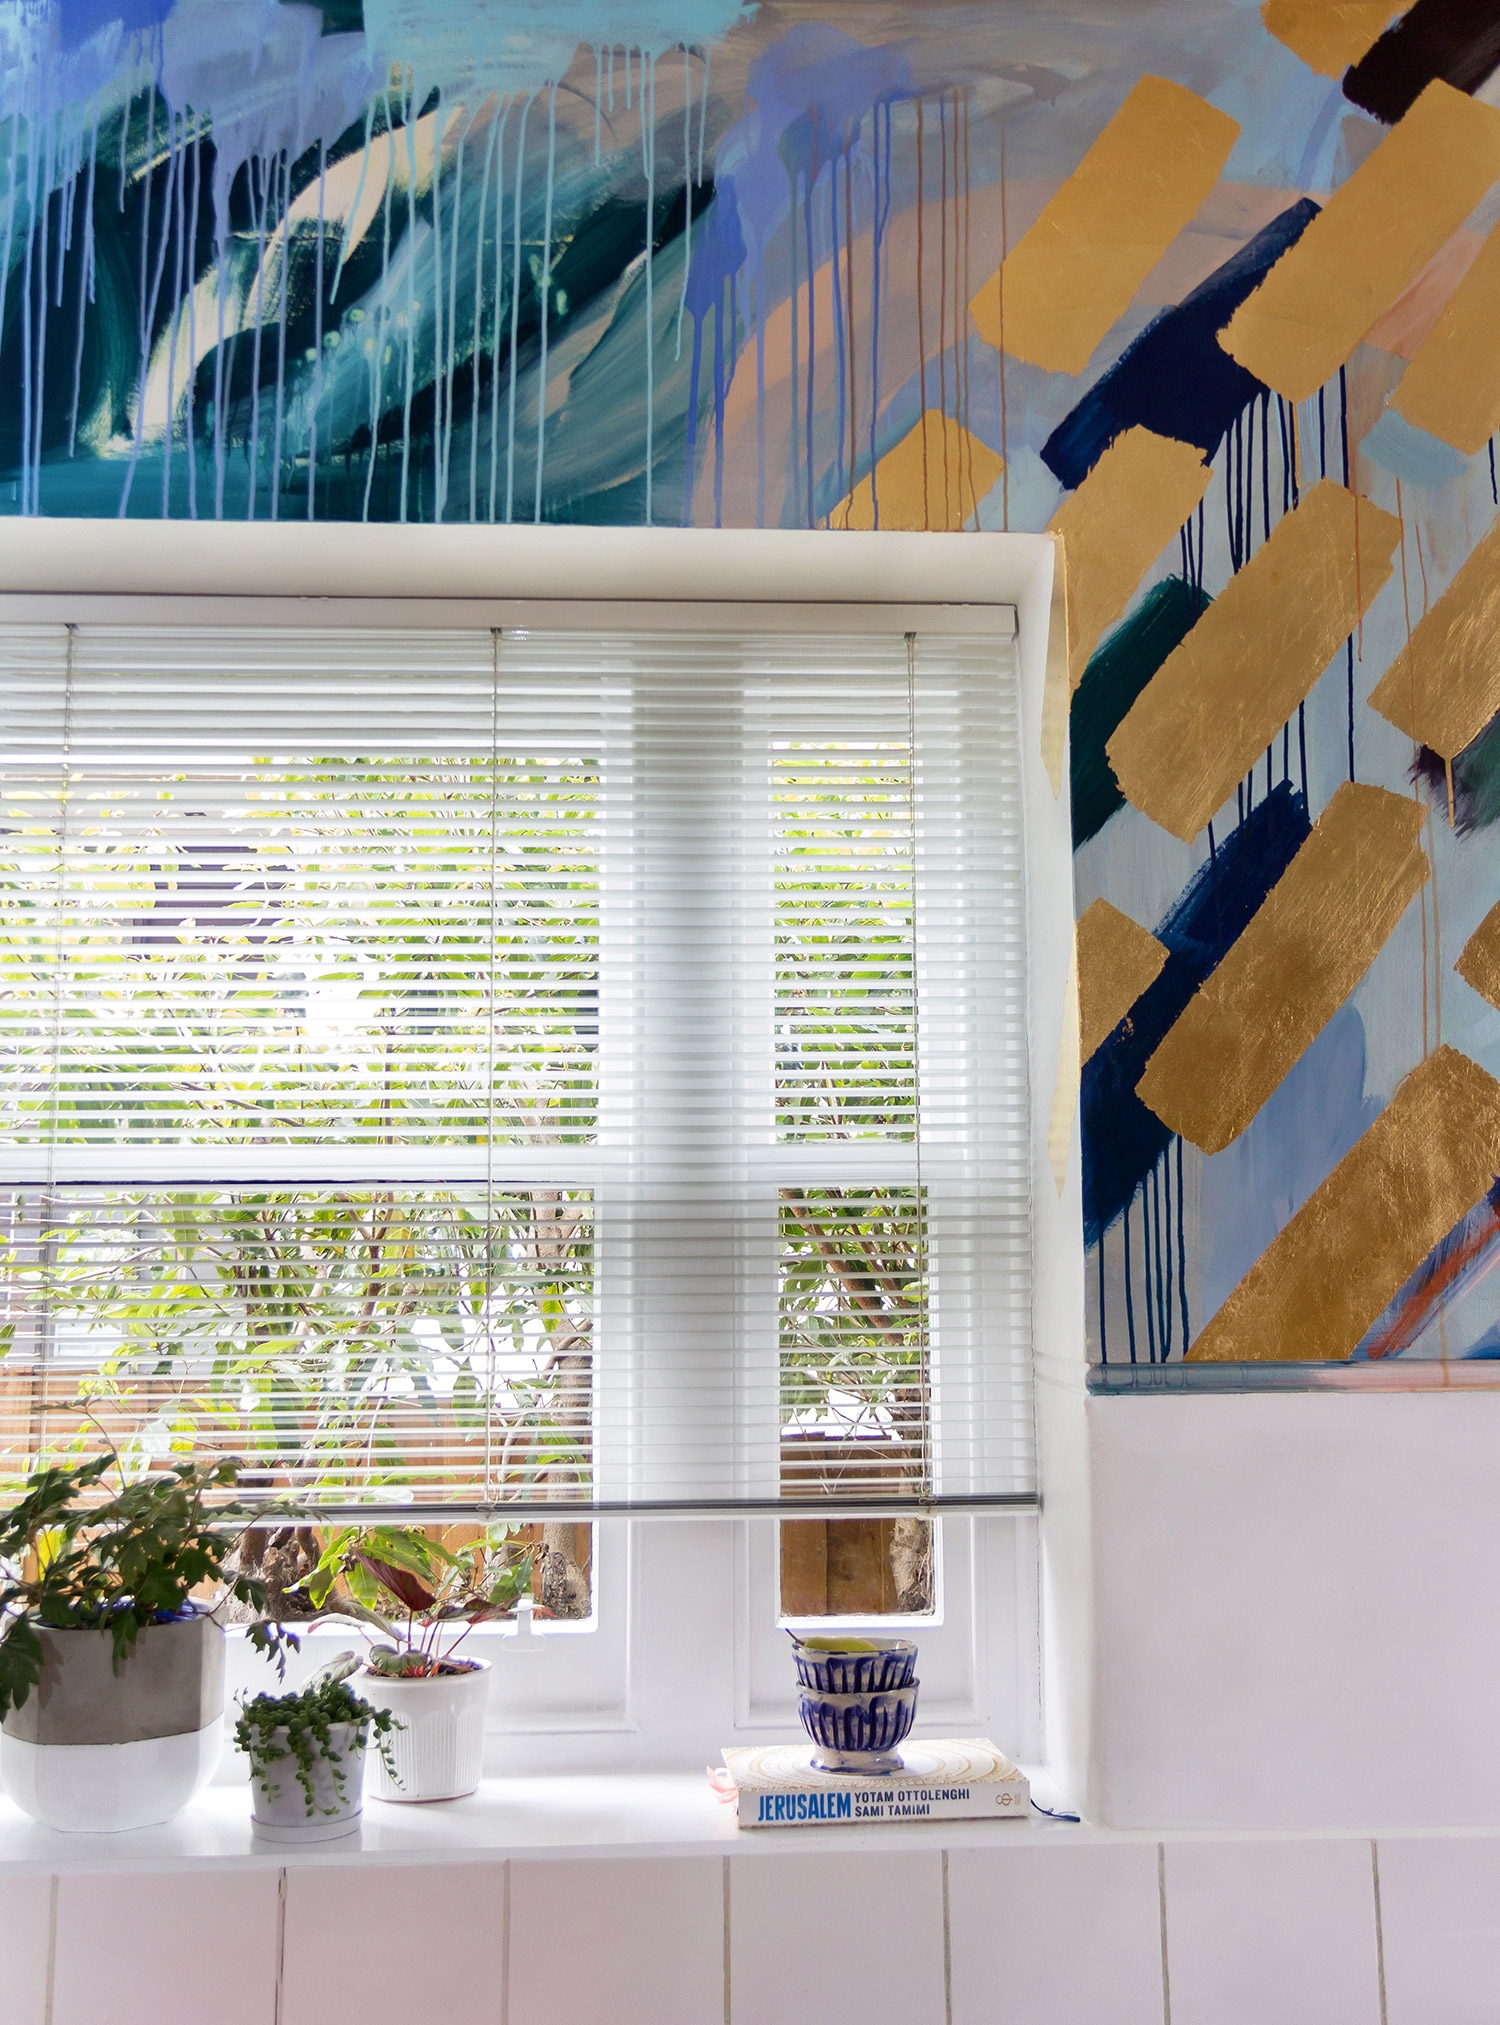 Modern, clean styled kitchen featuring gorgeous abstract mural with gold leaf and painterly drips, contemporary and fresh feel with green plants on windowsill and Jerusalem cookbook.